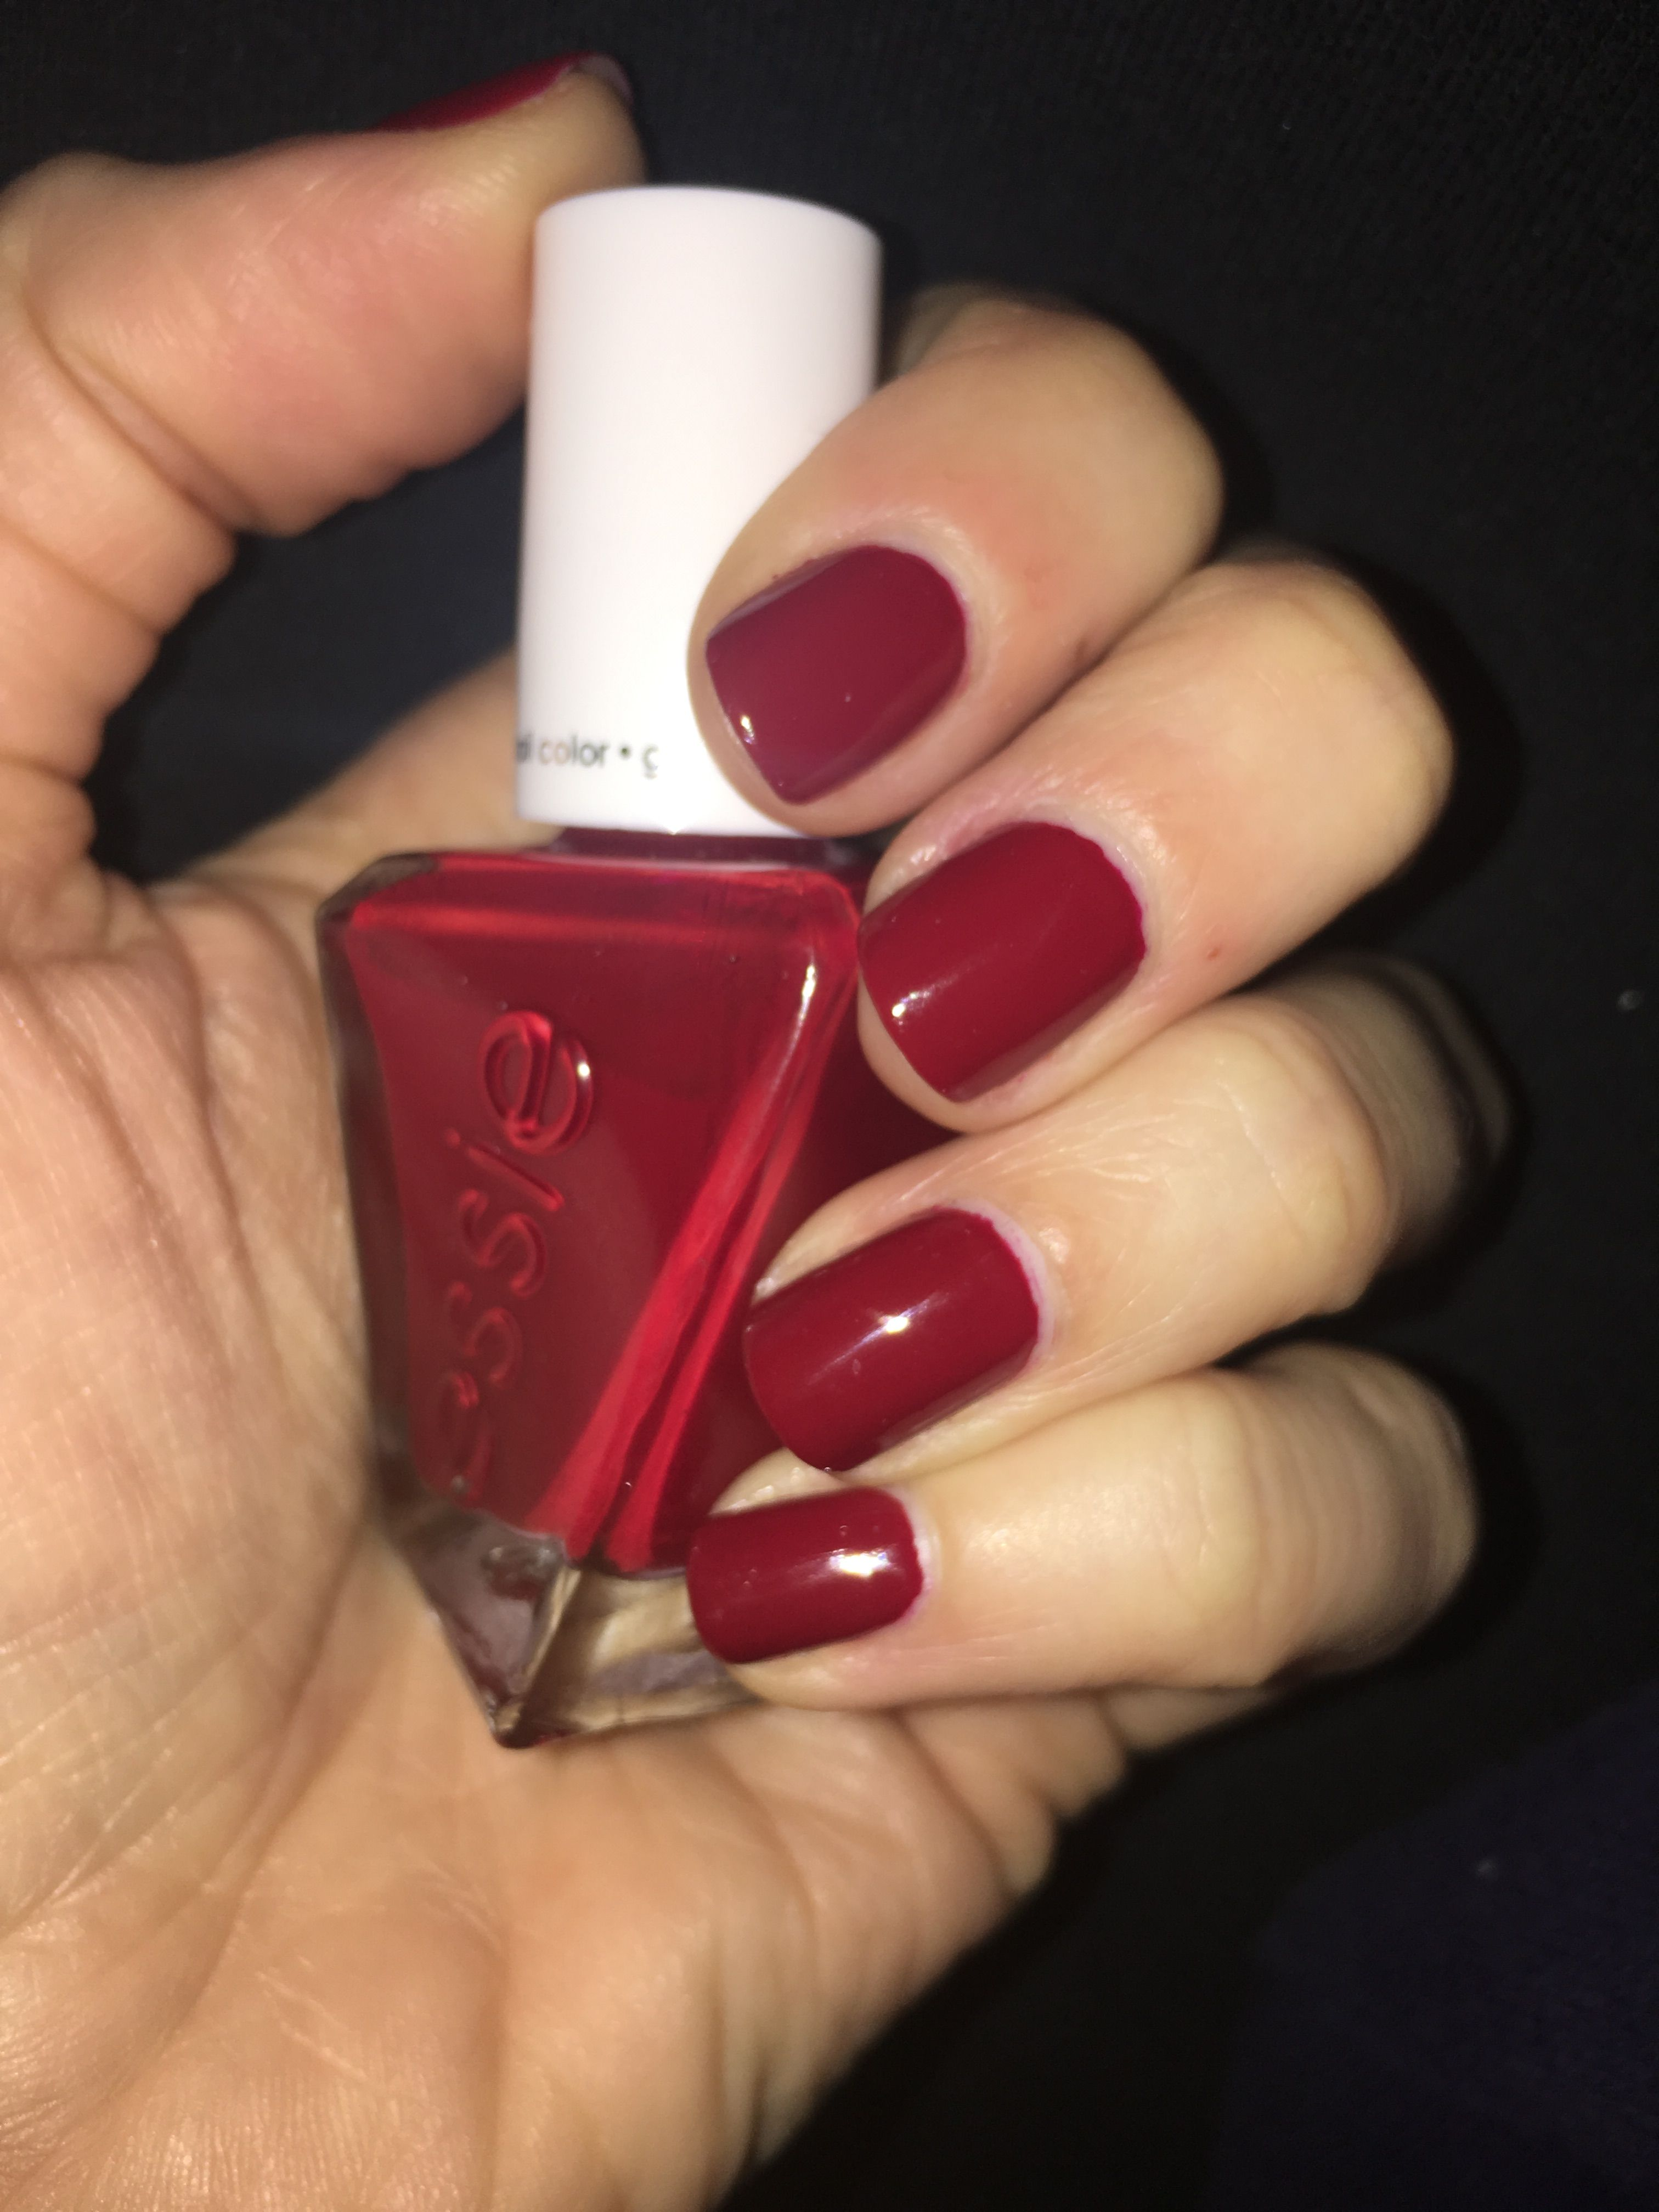 Bubbles Only by Essie Couture Gel   Nails   Pinterest   Essie nail ...